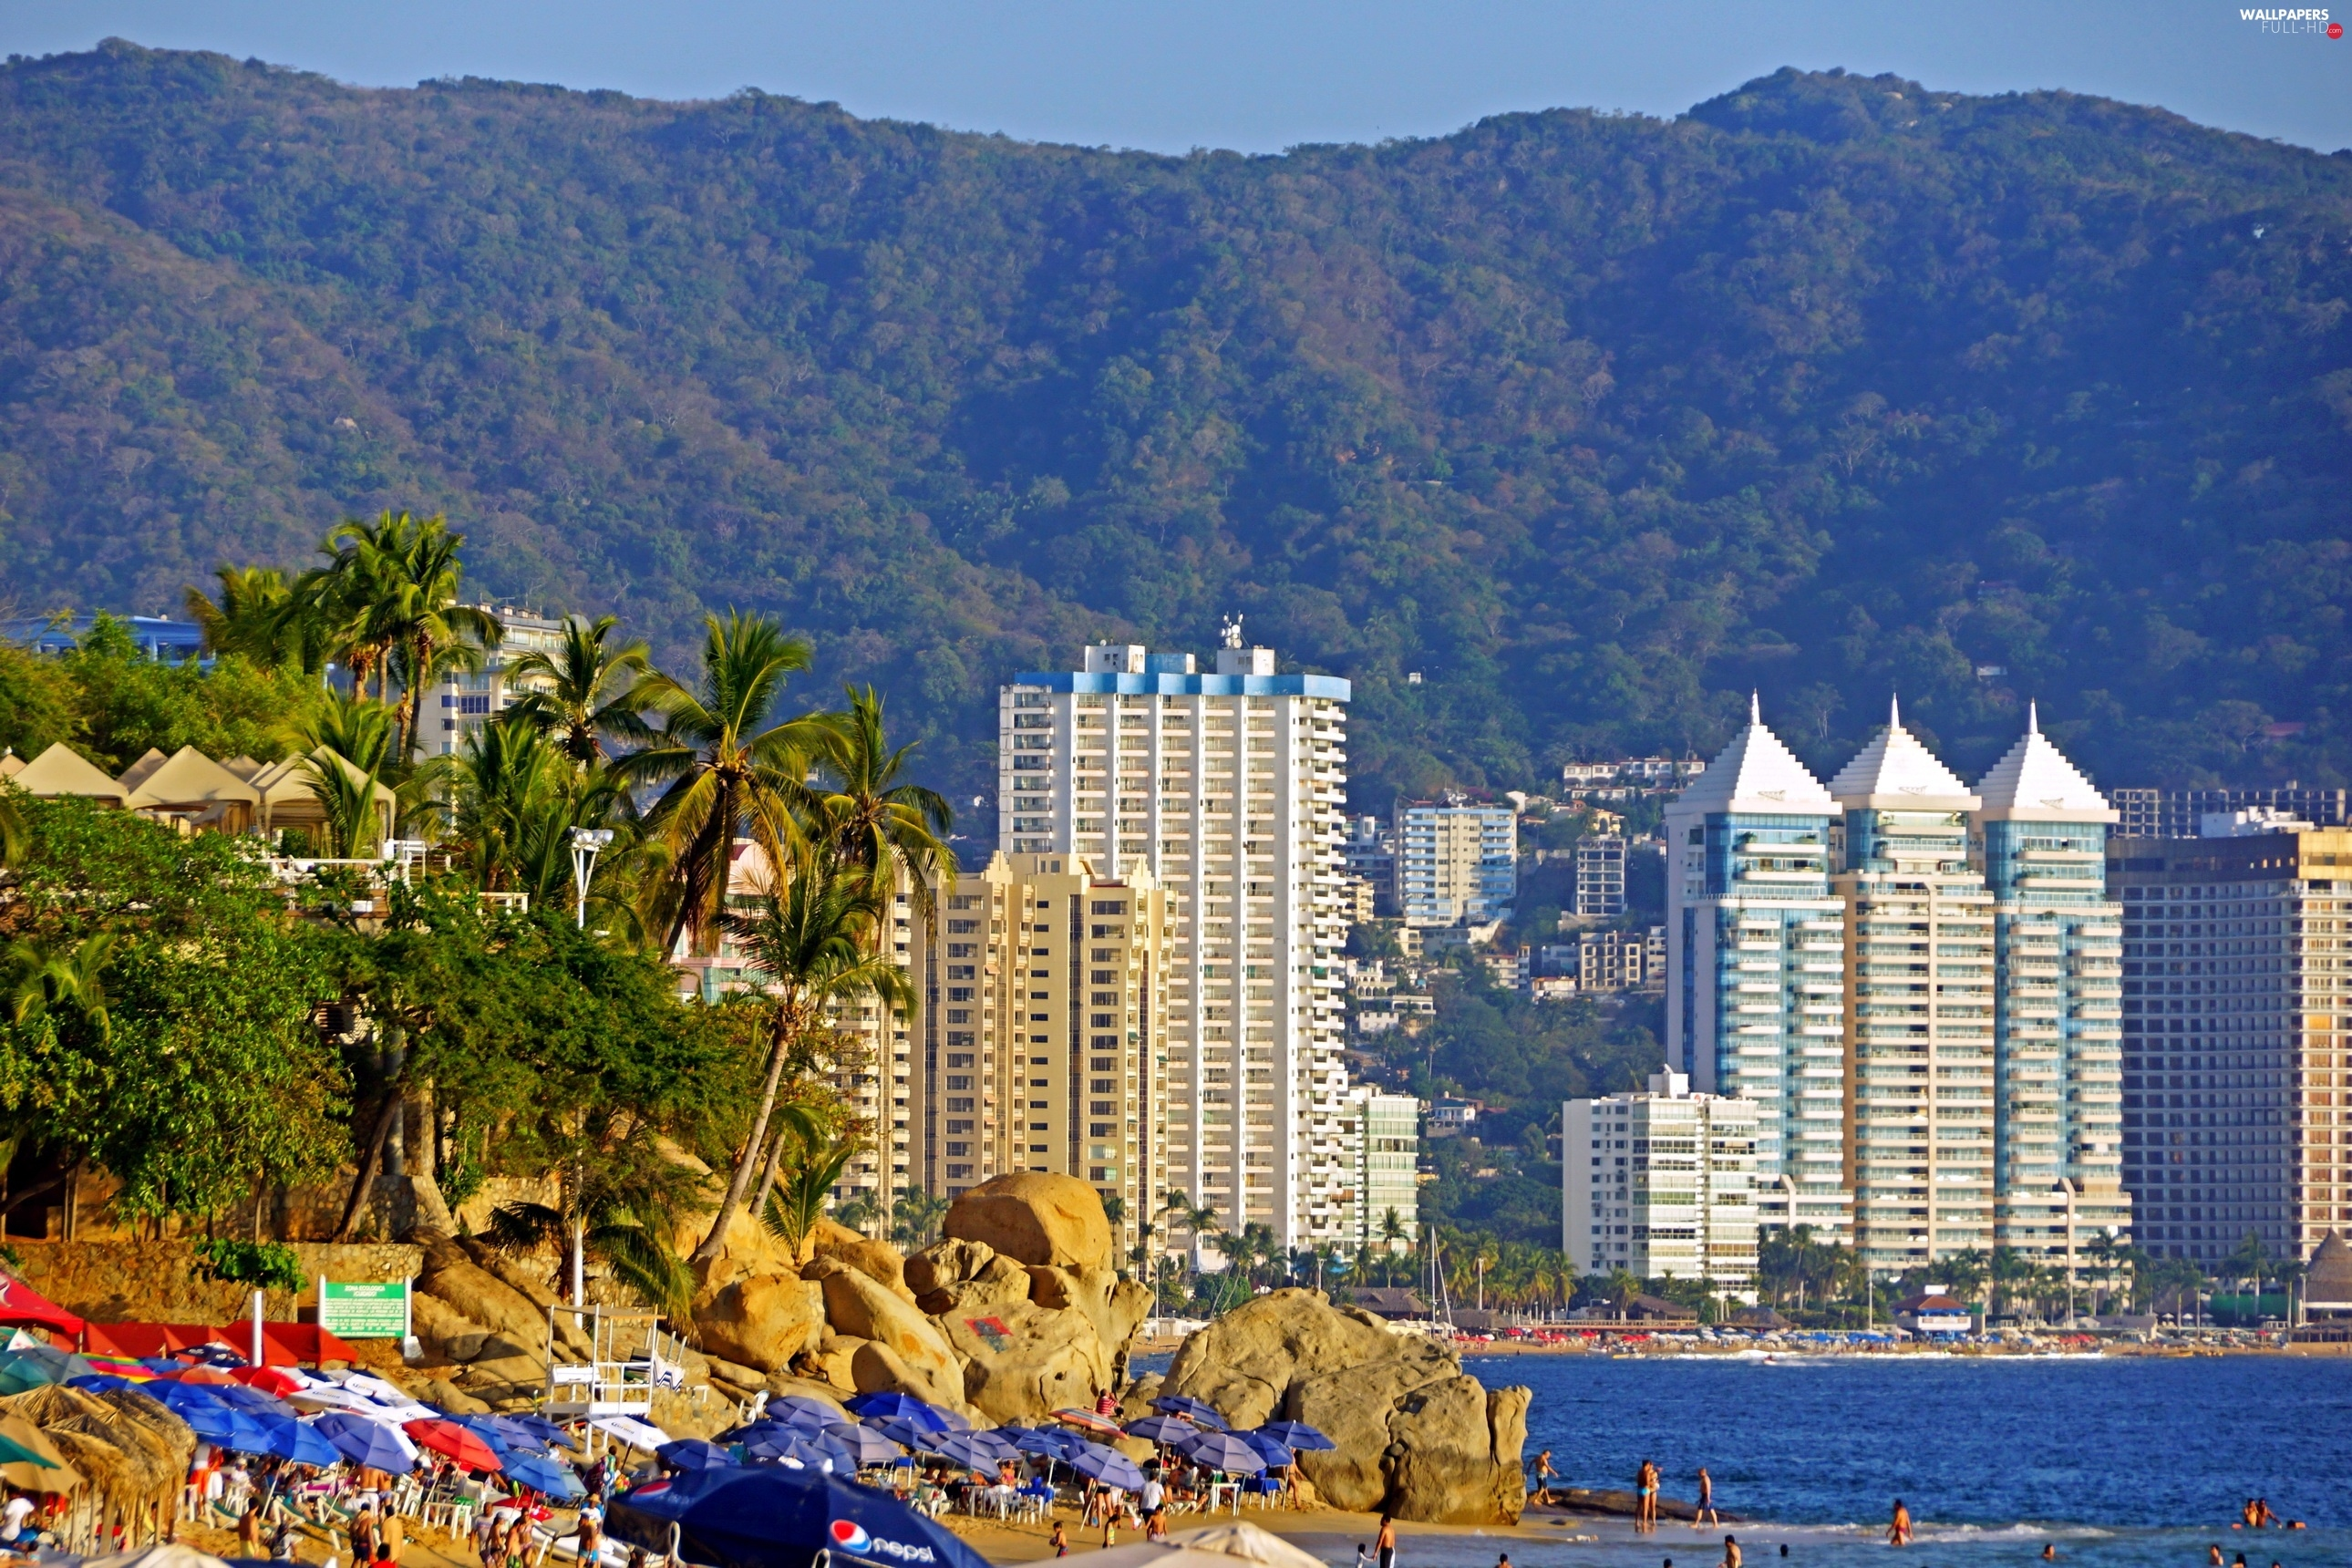 Sea, The banks, Hotels, Acapulco, by